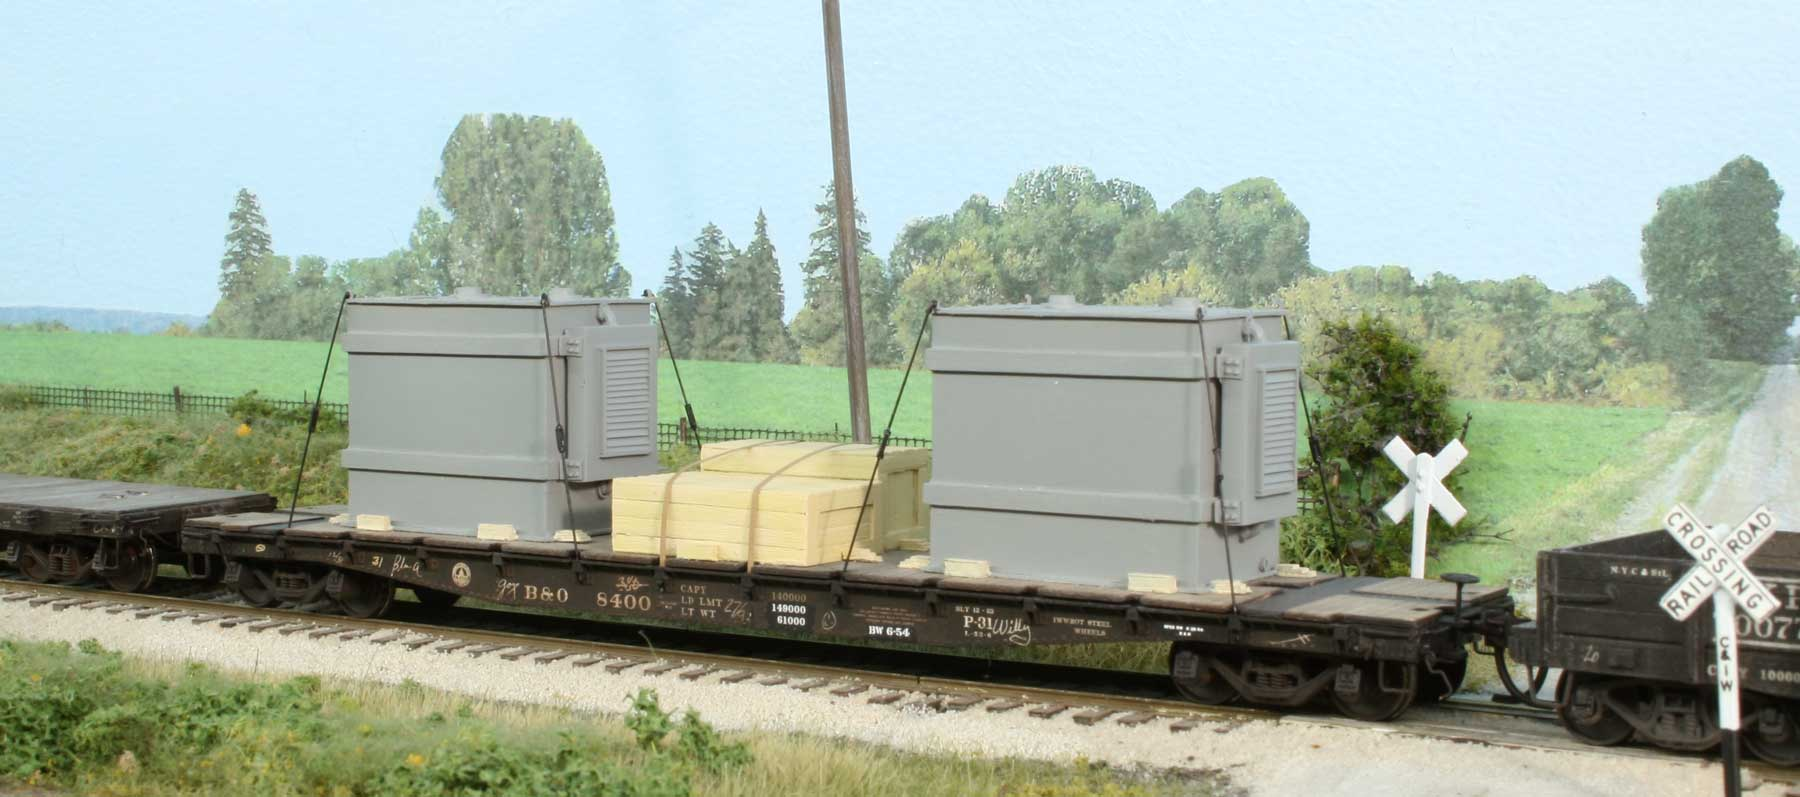 hight resolution of product code l t1 transformer loads for open top freight cars two ho scale resin cast transformer loads with crates flat car not included